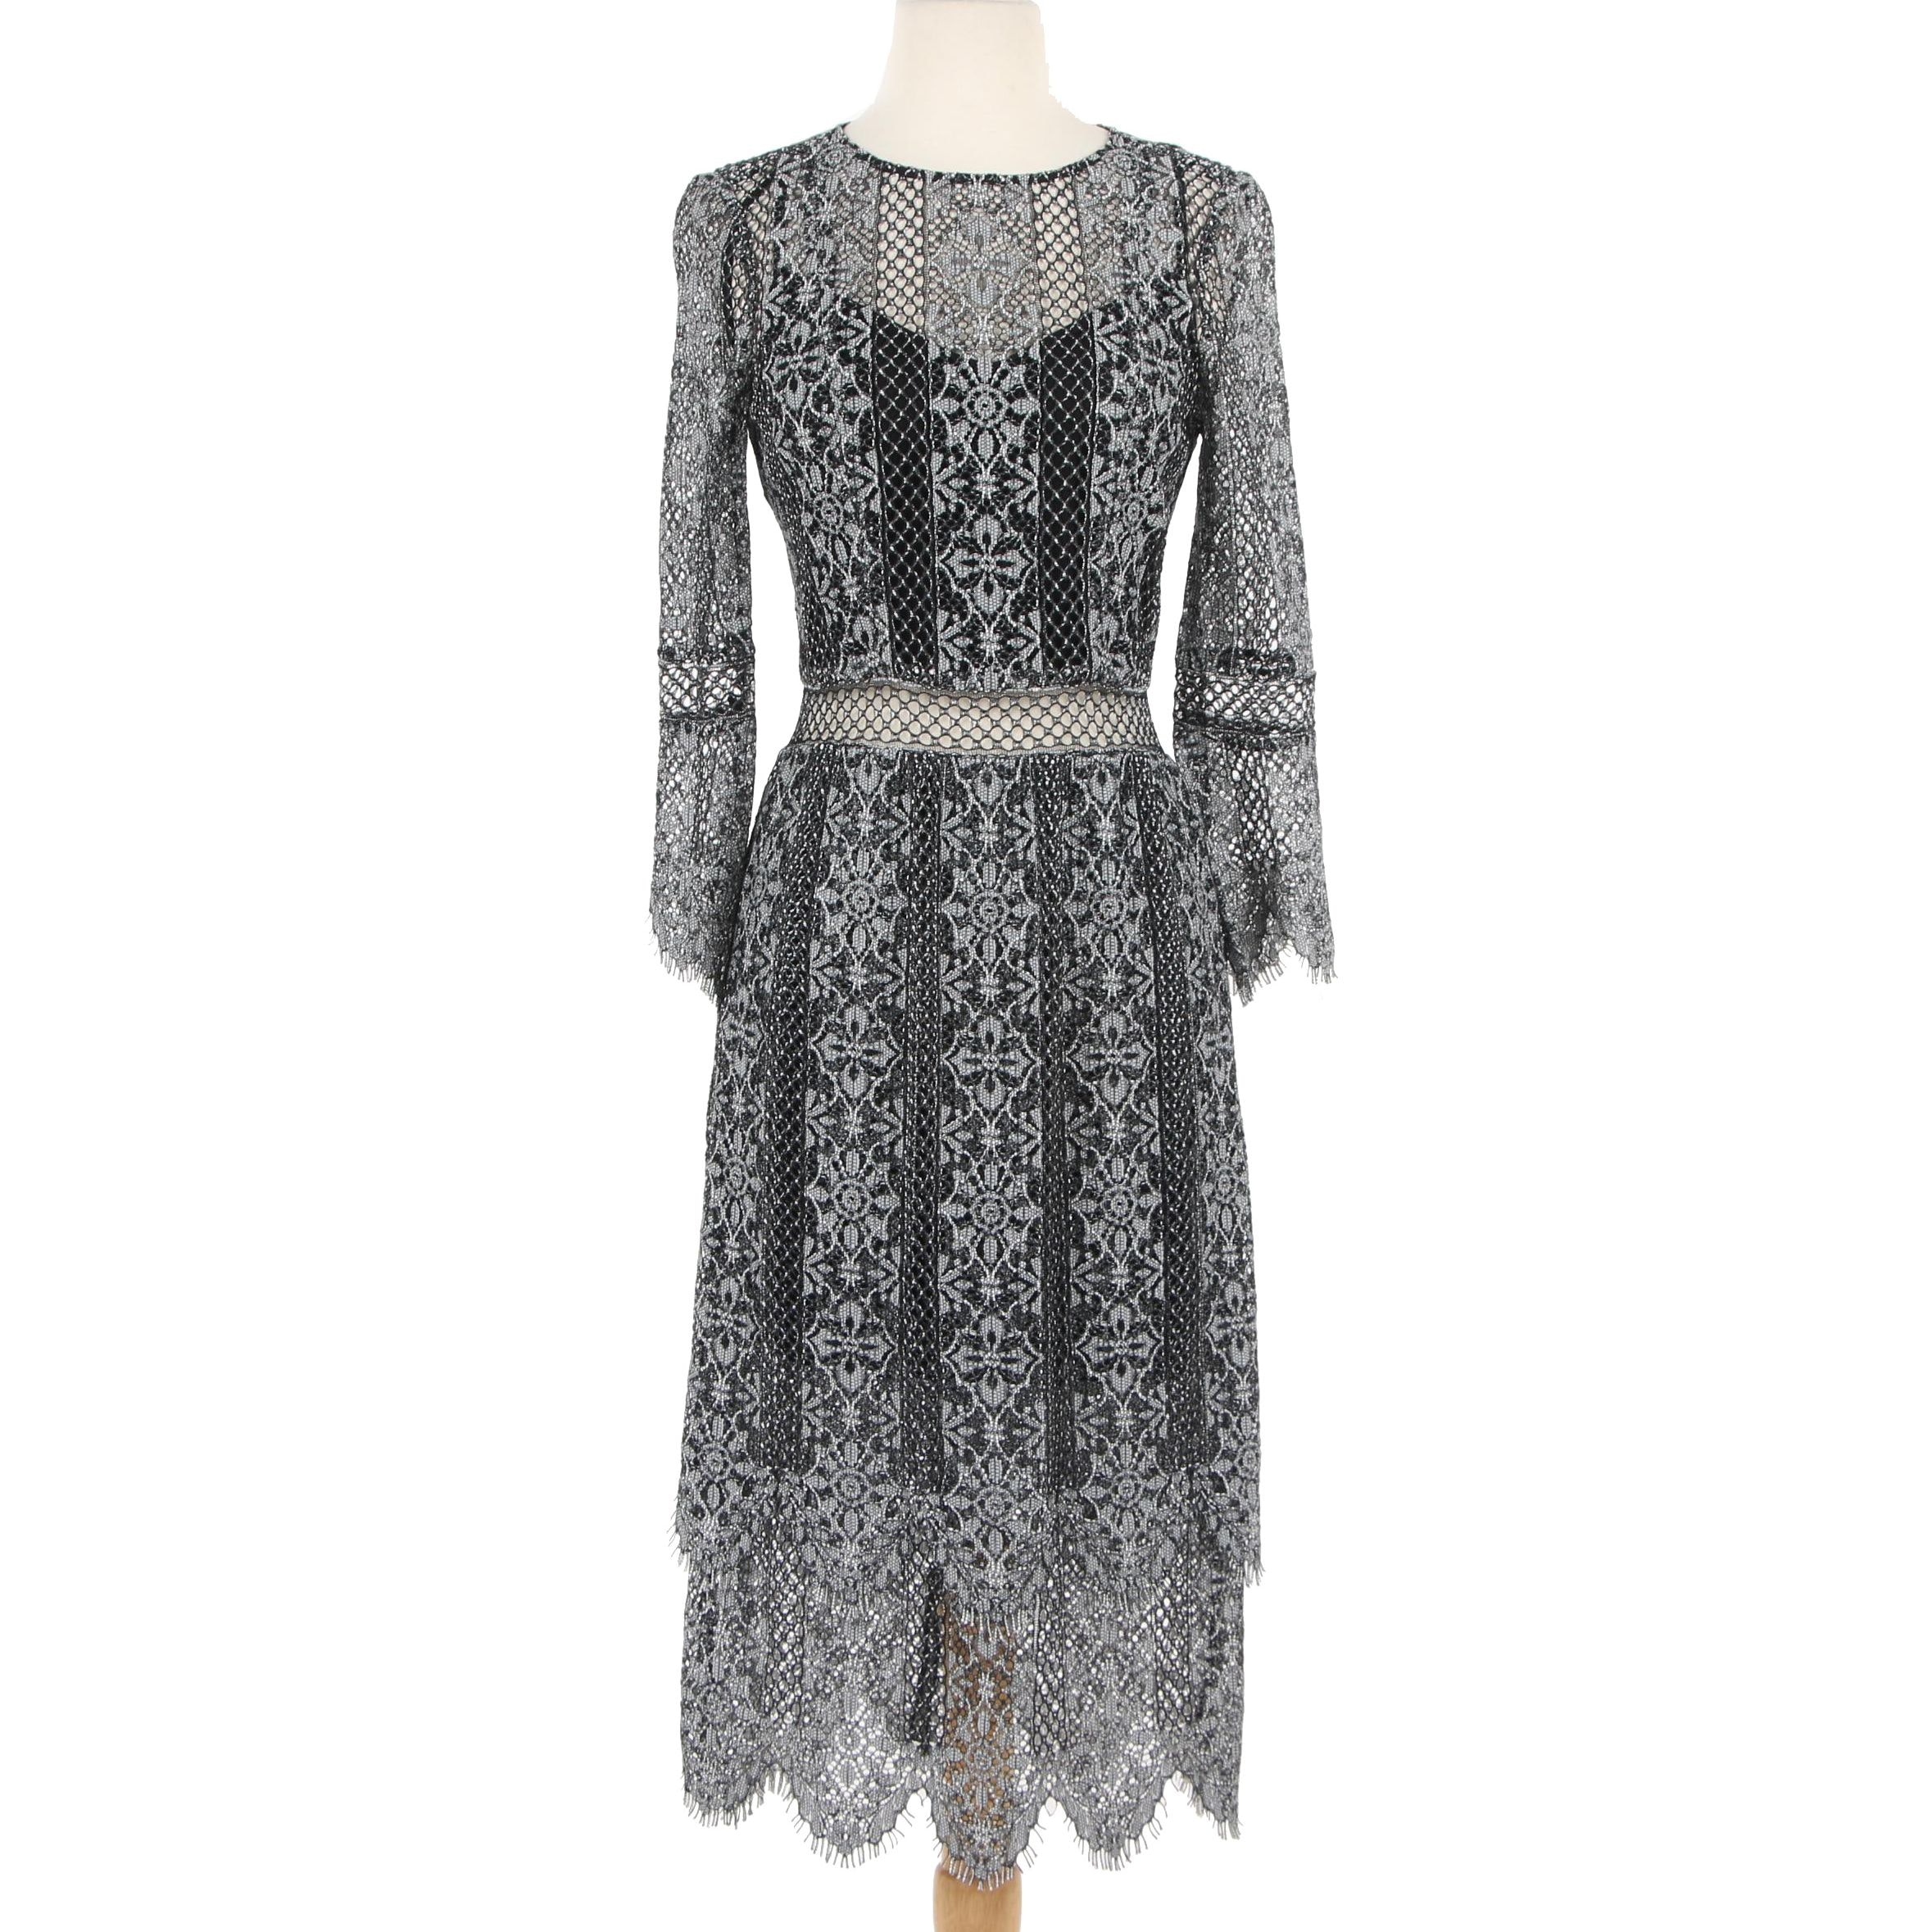 Haute Hippie Black Lace Dress with Metallic Silver Embroidery